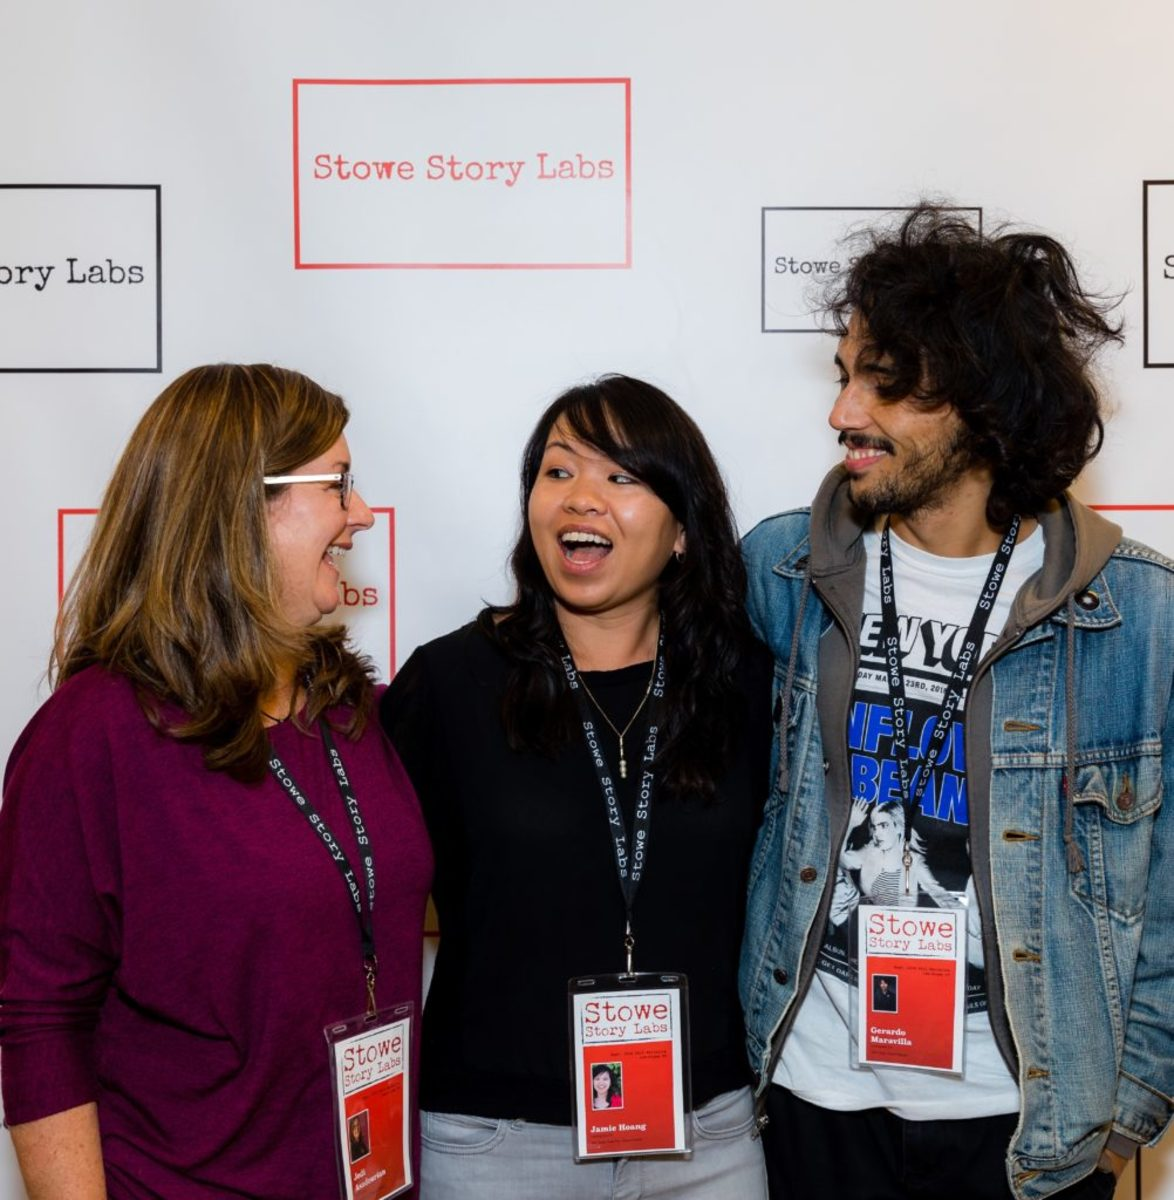 Jodi Asadourian, Jamie Hoang, and Gerry Maravilla at the 2018 Stowe Fall Narrative Lab